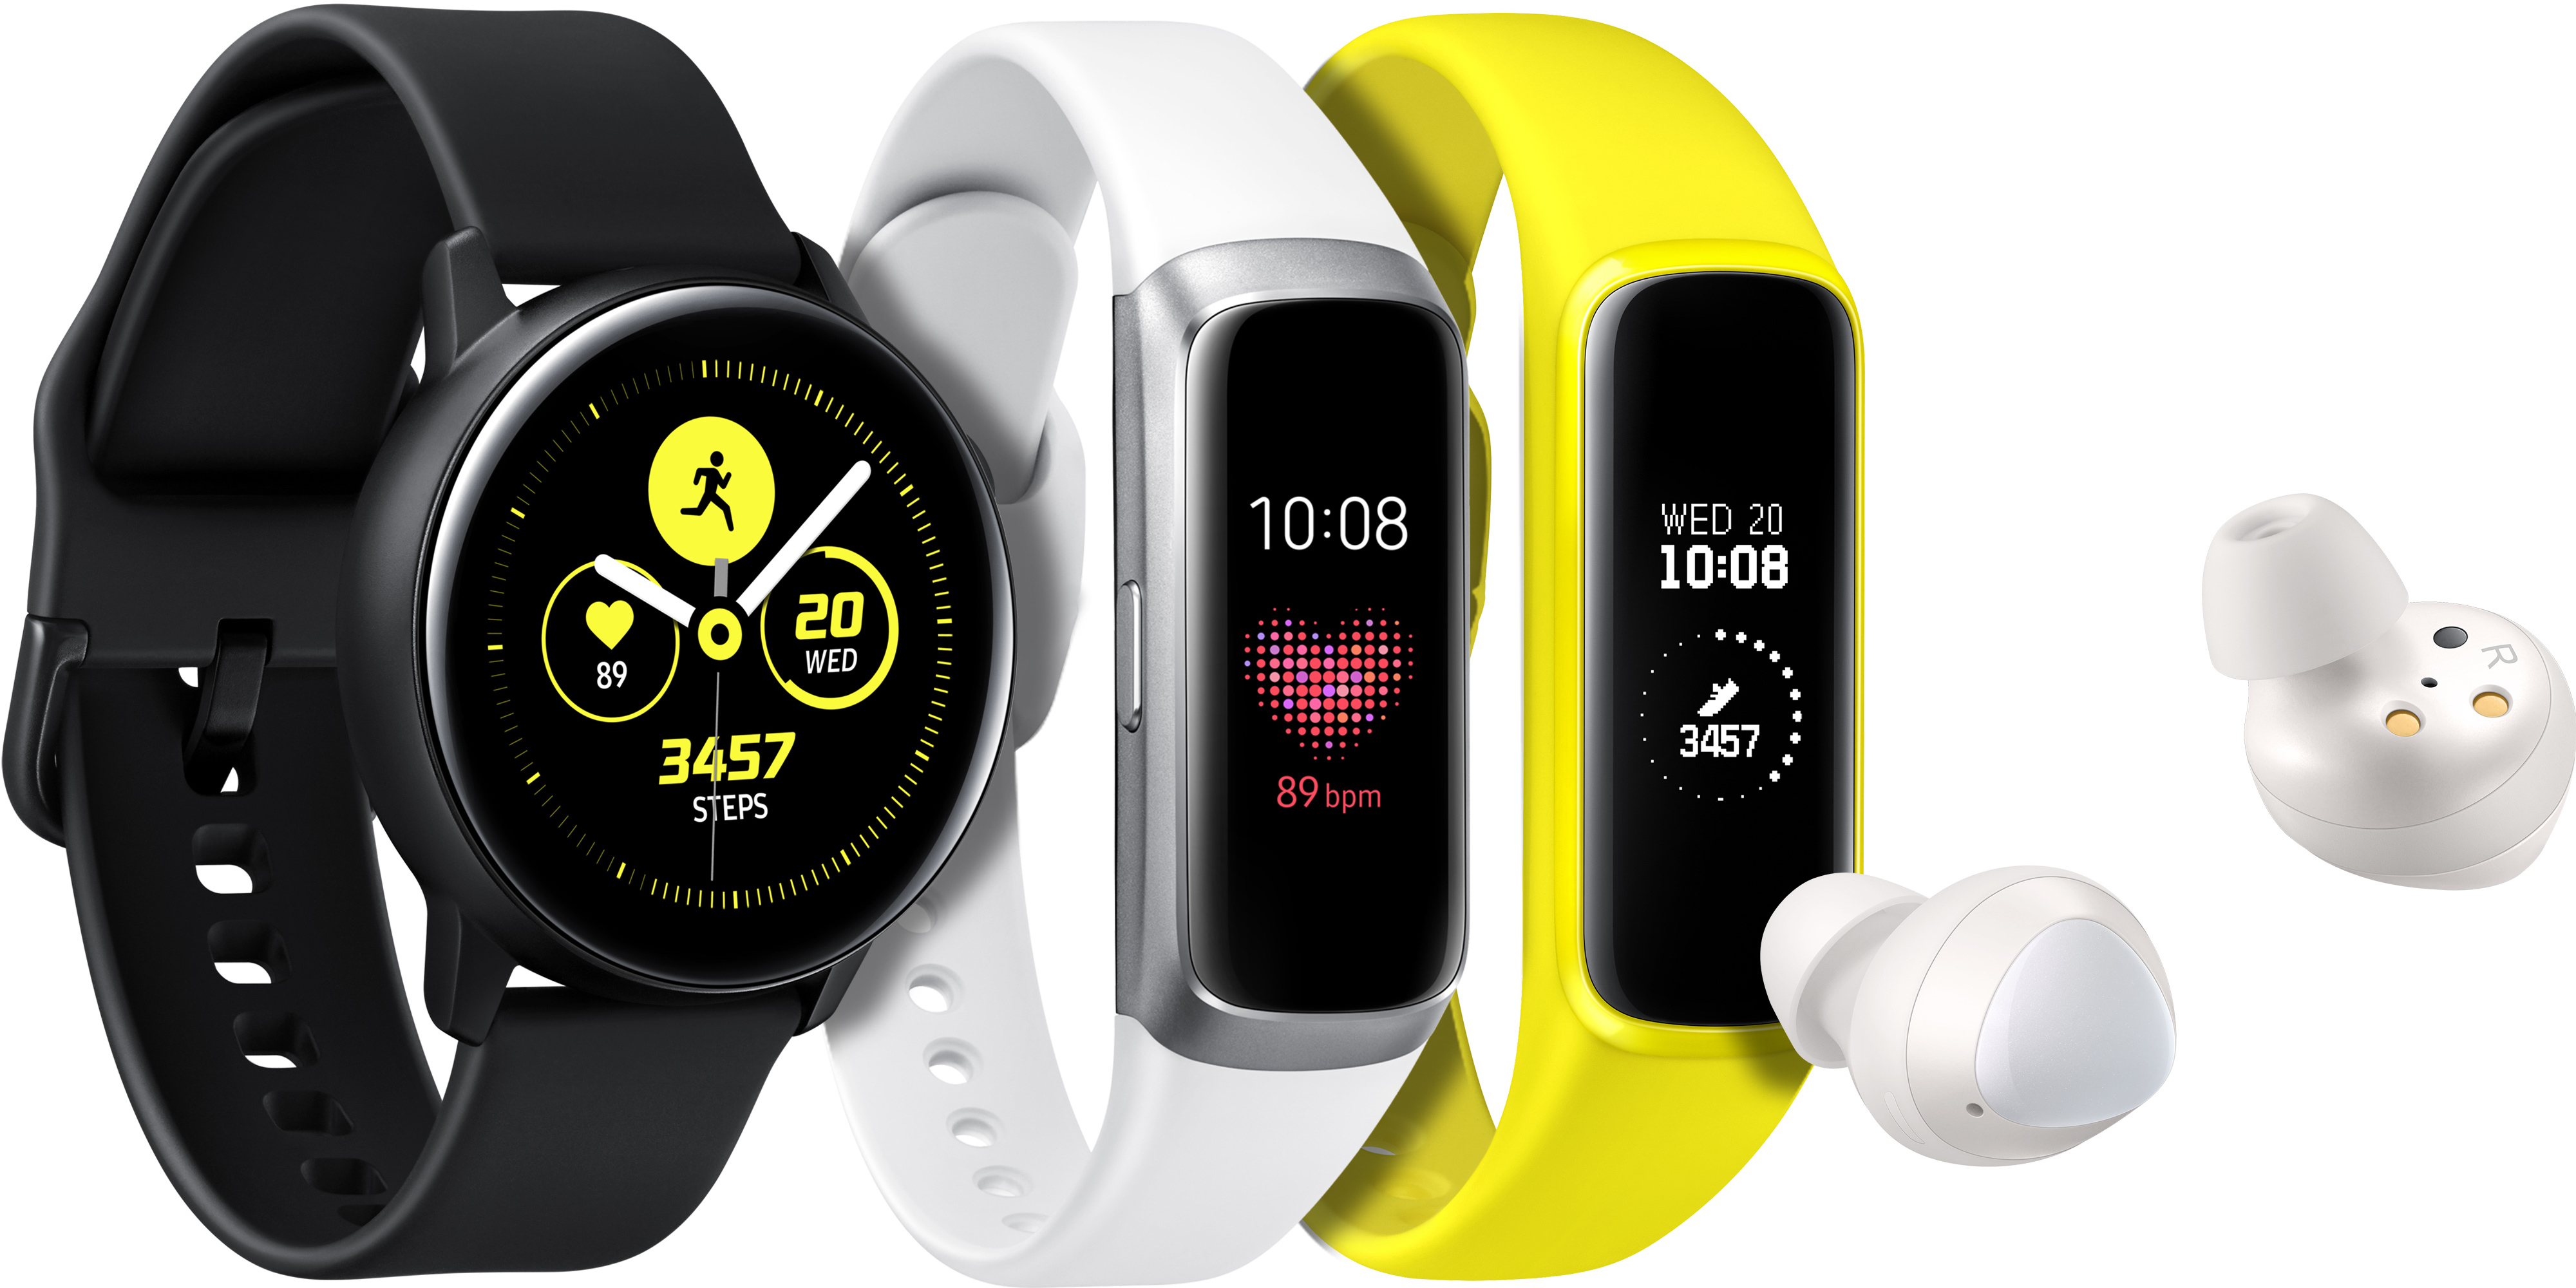 Samsung's Galaxy Fit is a dedicated fitness tracker, launching Q2 2019